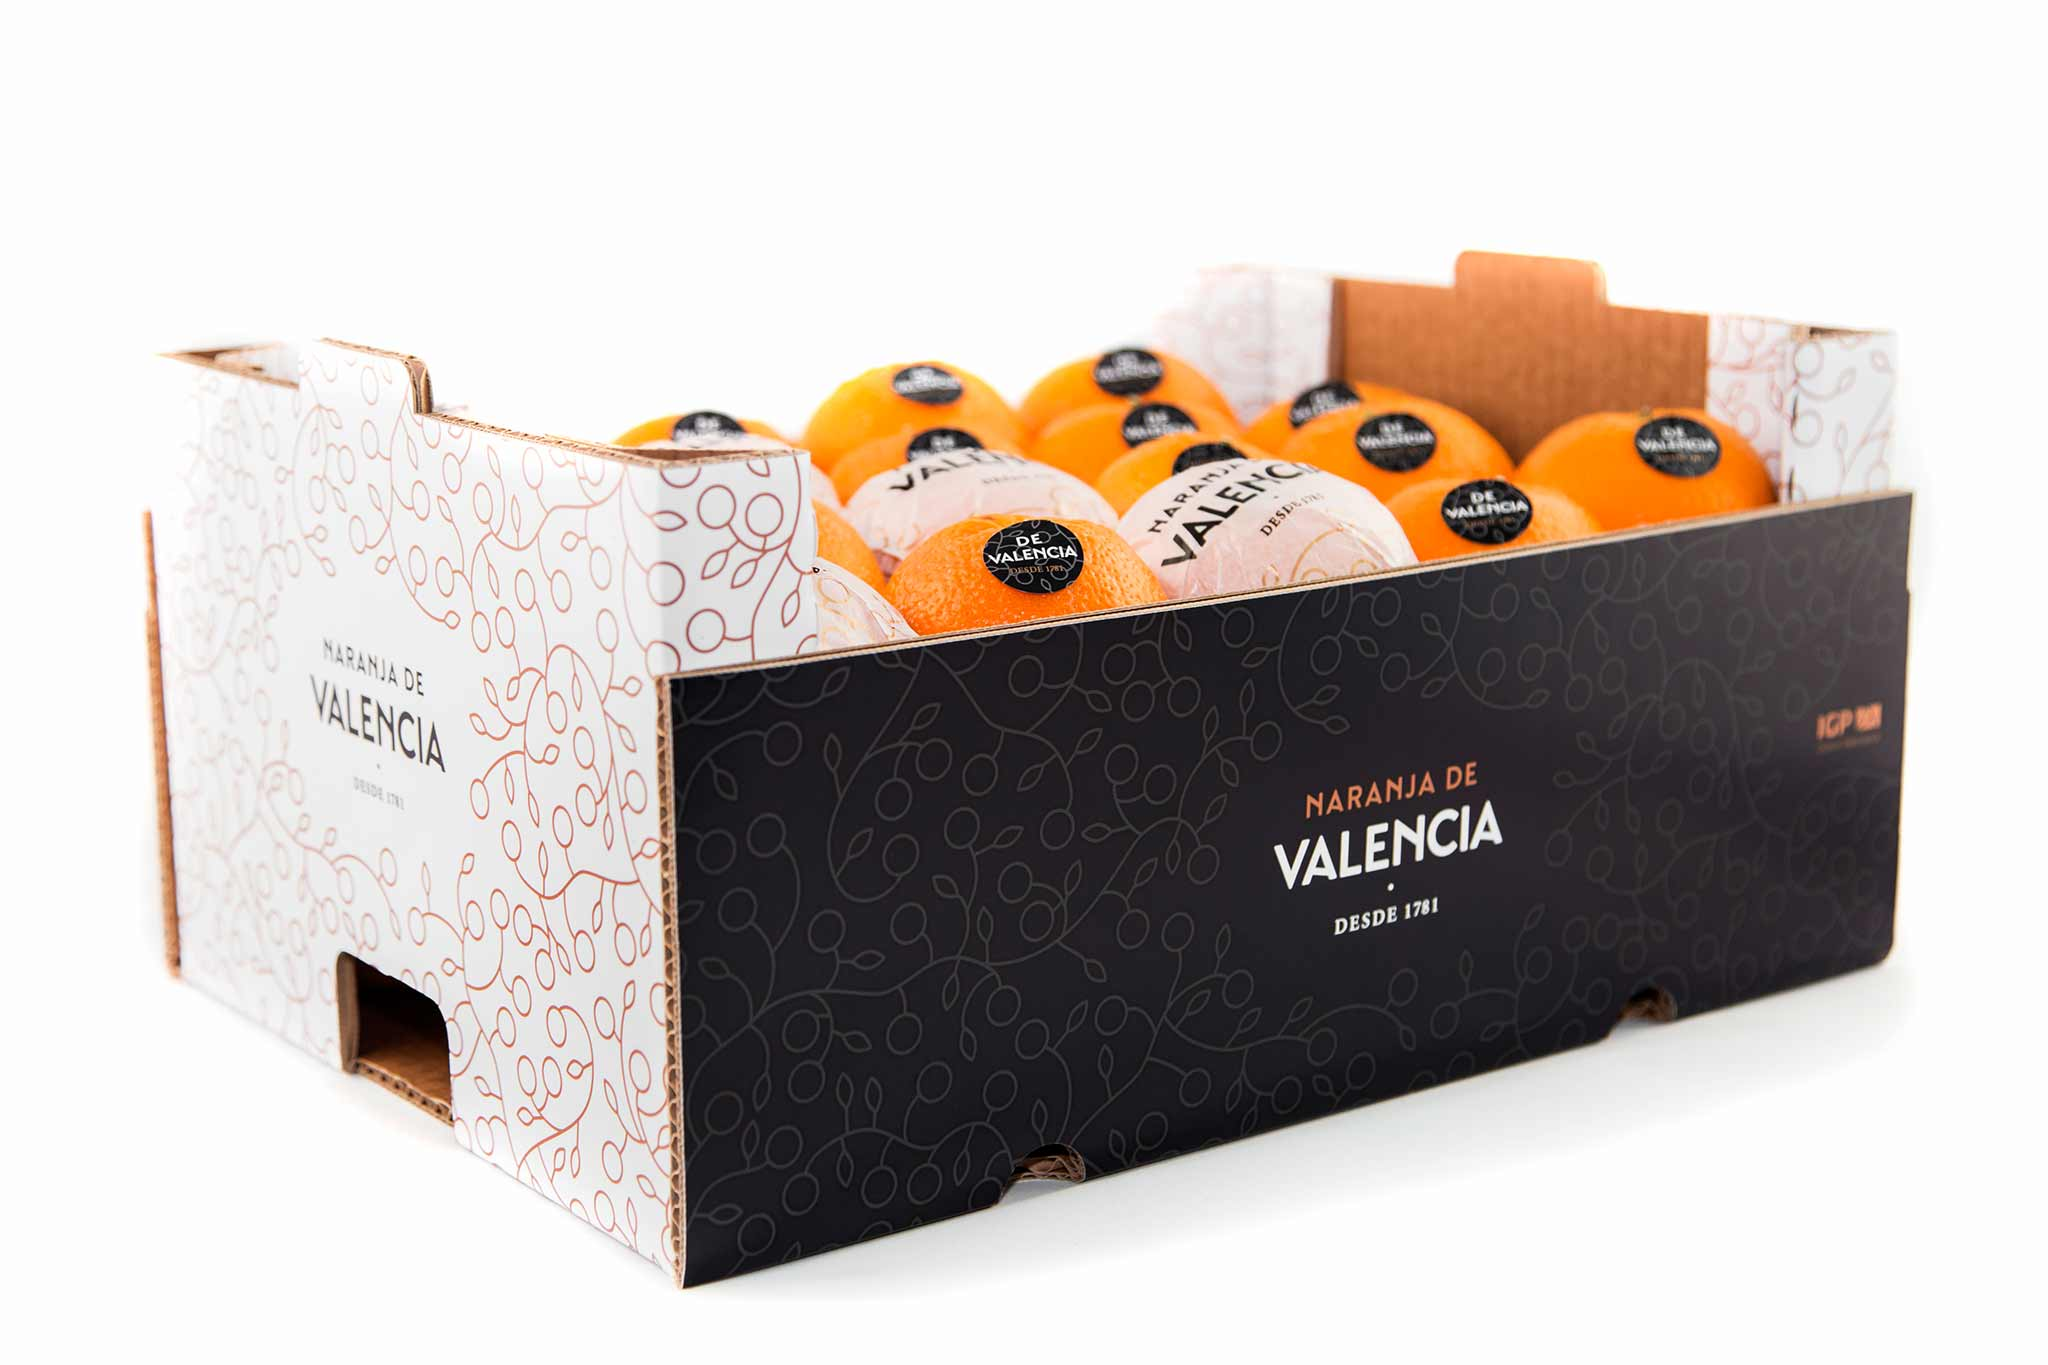 Packaging Naranja de Valencia - Valencia Orange